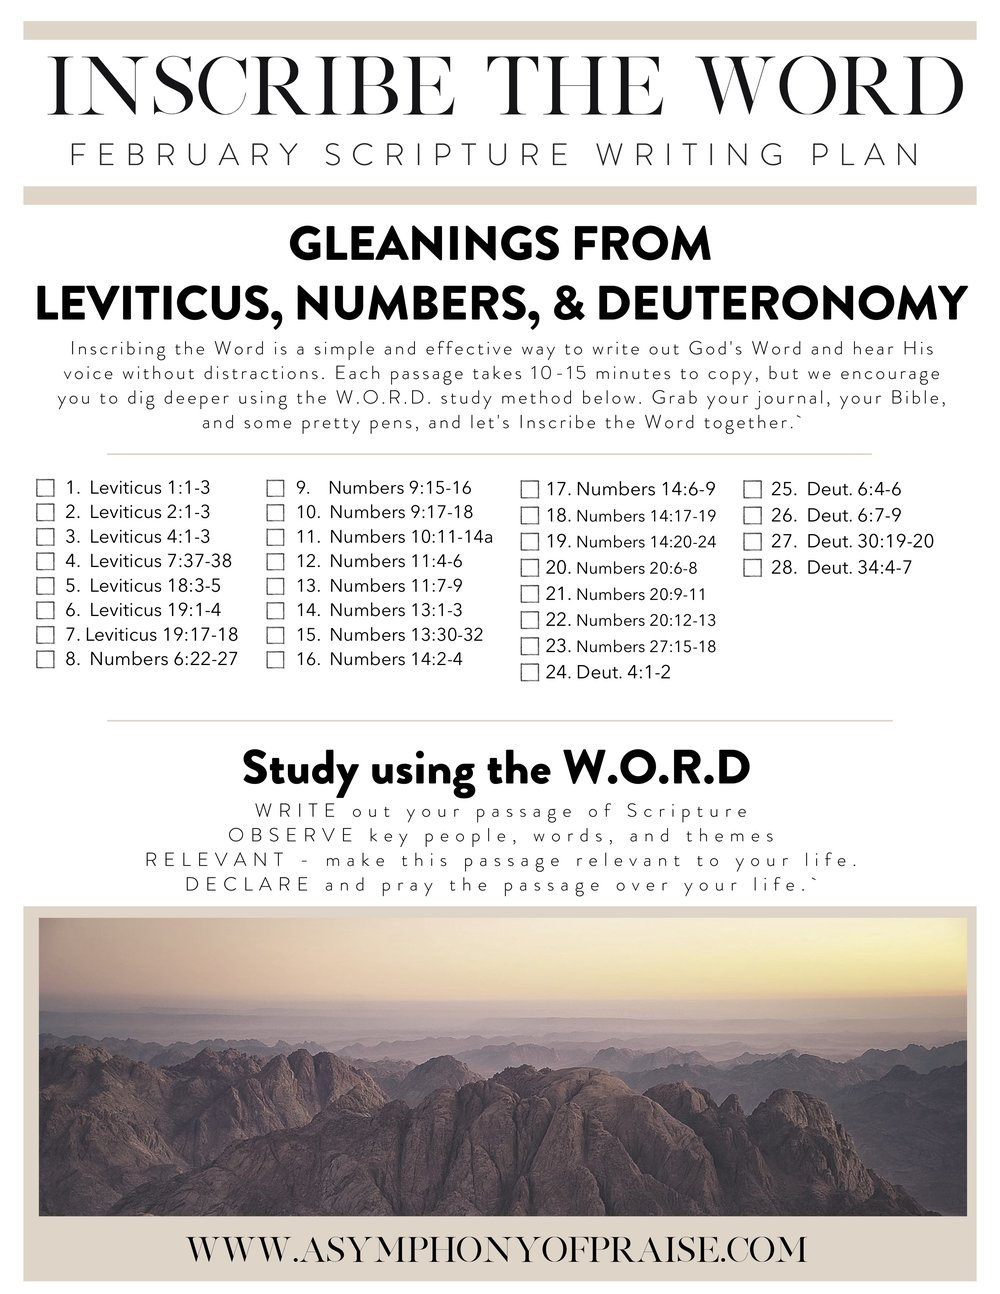 Our February Scripture Writing Plan is here and we are so excited to write through the books of Leviticus, Numbers, and Deuteronomy. As we continue to Write through the Bible this year, I encourage you not to pass up these books. While they aren't usually books we turn to, inside you will find a treasure. Join us for this month's Bible Study Plan and get ready to Inscribe the Word as we Inscribe The Books of the Law; Leviticus, Numbers, and Deuteronomy.